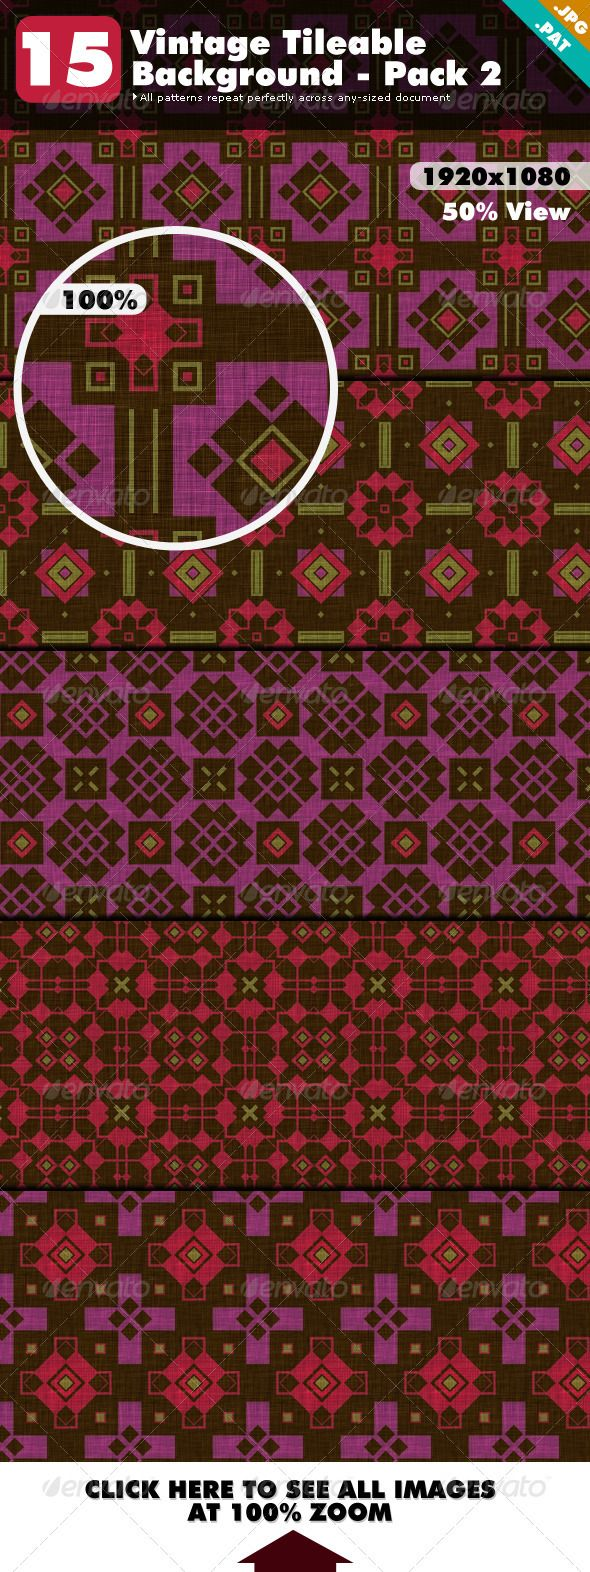 Vintage Tileable Background Pack 2  #GraphicRiver         A pattern is a style you can apply to content. It's usually a small image that can be tiled seamlessly to create a pattern.   This is a collection of 15 vintage style patterns.   Include 15 .jpg Seamless Patterns Perfect for Web Design.   Include 1 .pat Photoshop Pattern File which you can load into your Photoshop from the preset manager and use them as pattern fills.   How to install patterns in Photoshop See video tutorial…